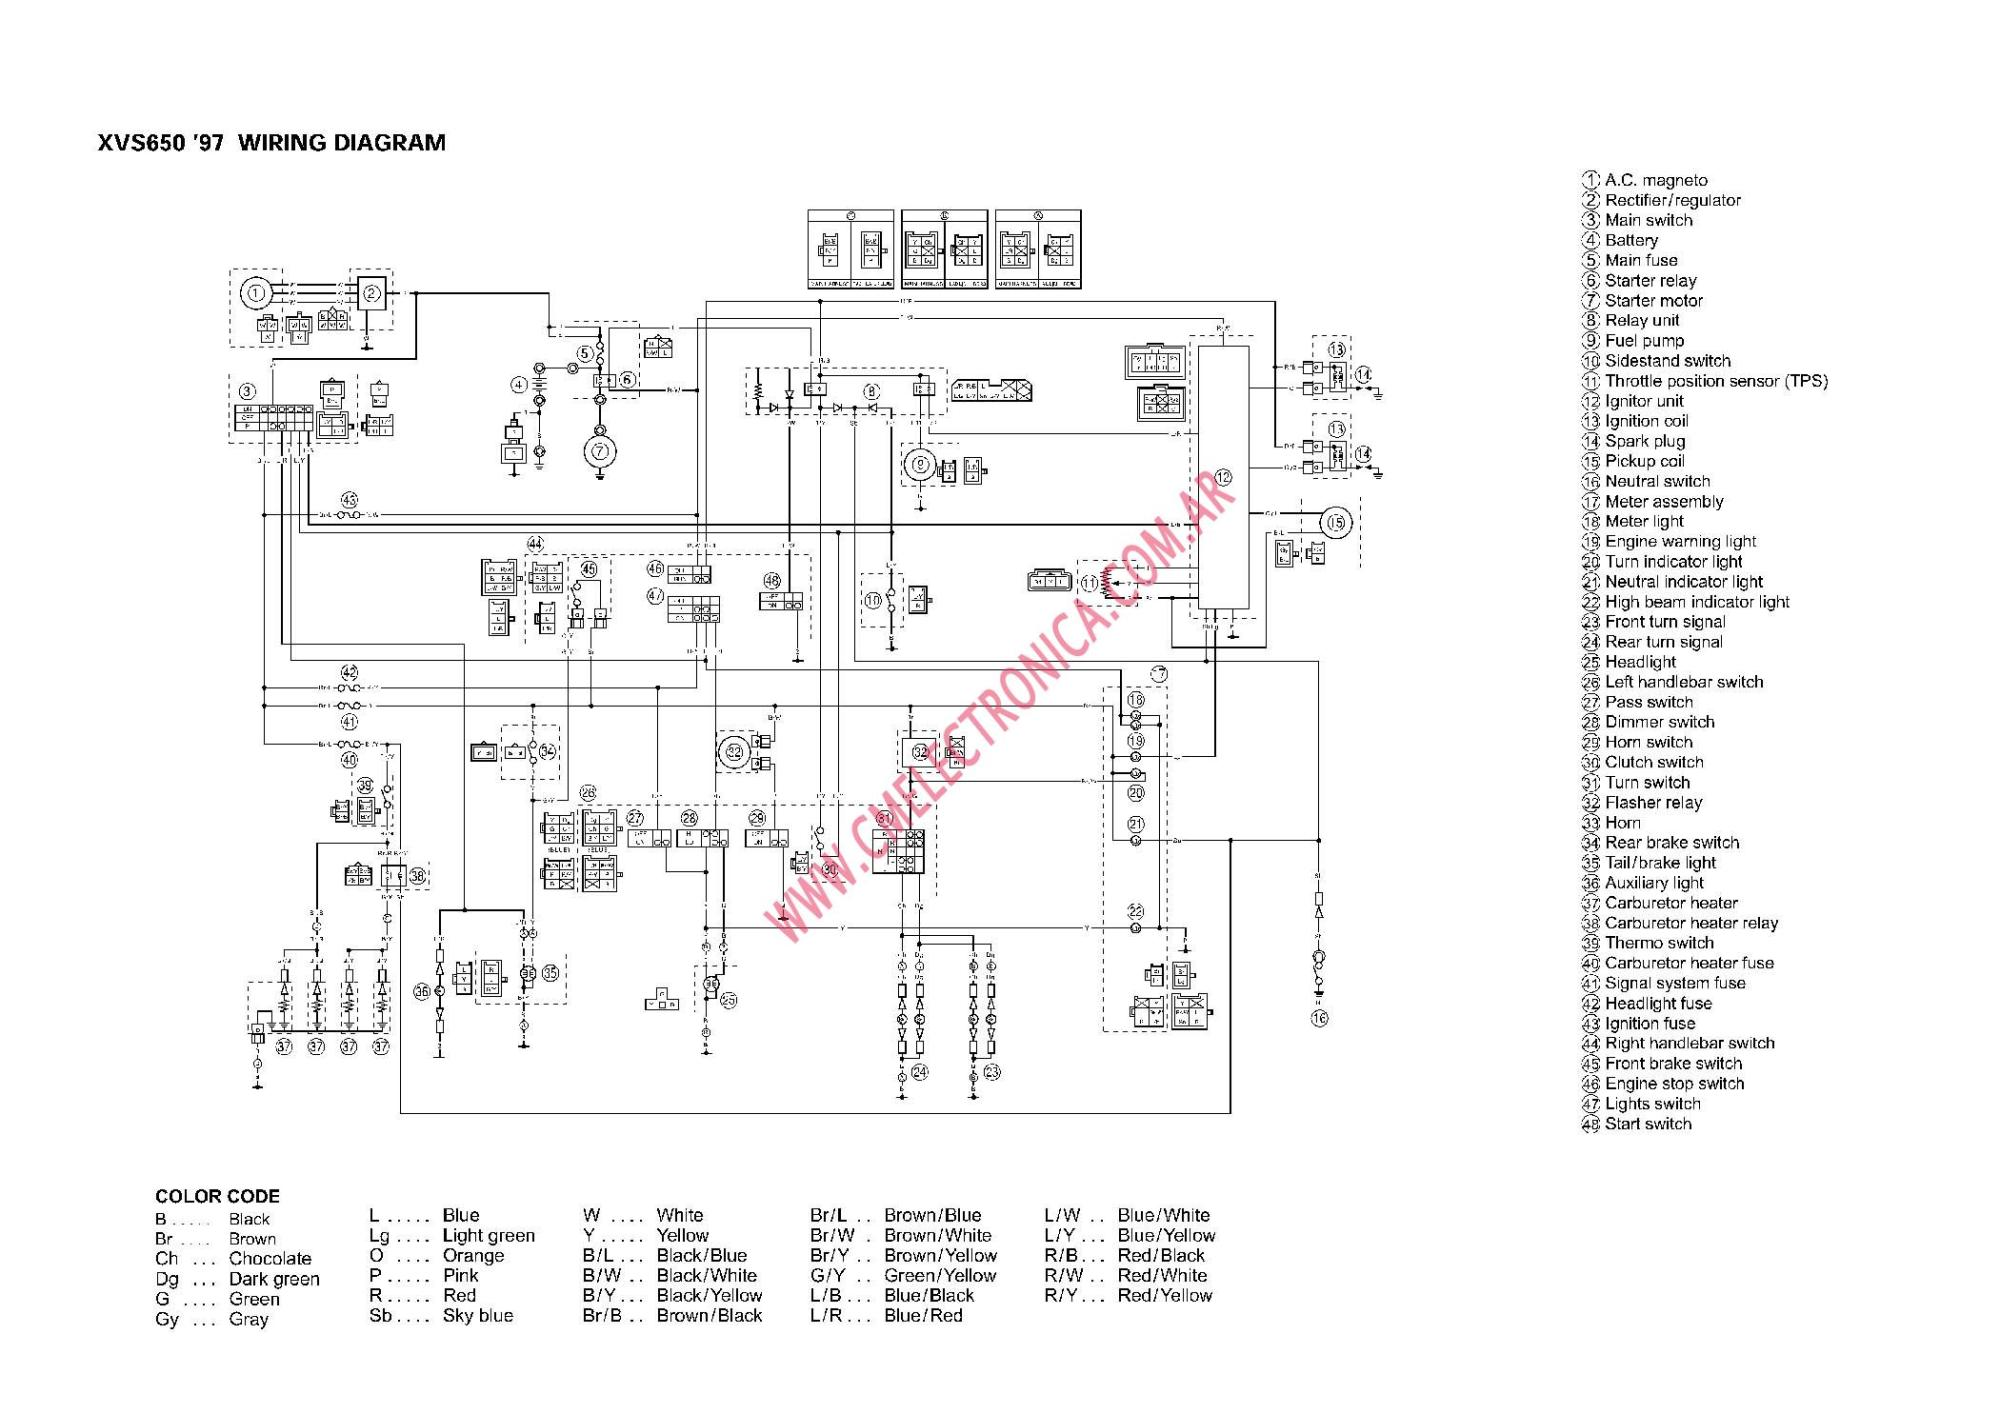 hight resolution of xvs650 wiring diagram simple wiring schema 2013 yamaha xvs650 xvs650 wiring diagram wiring diagram third level